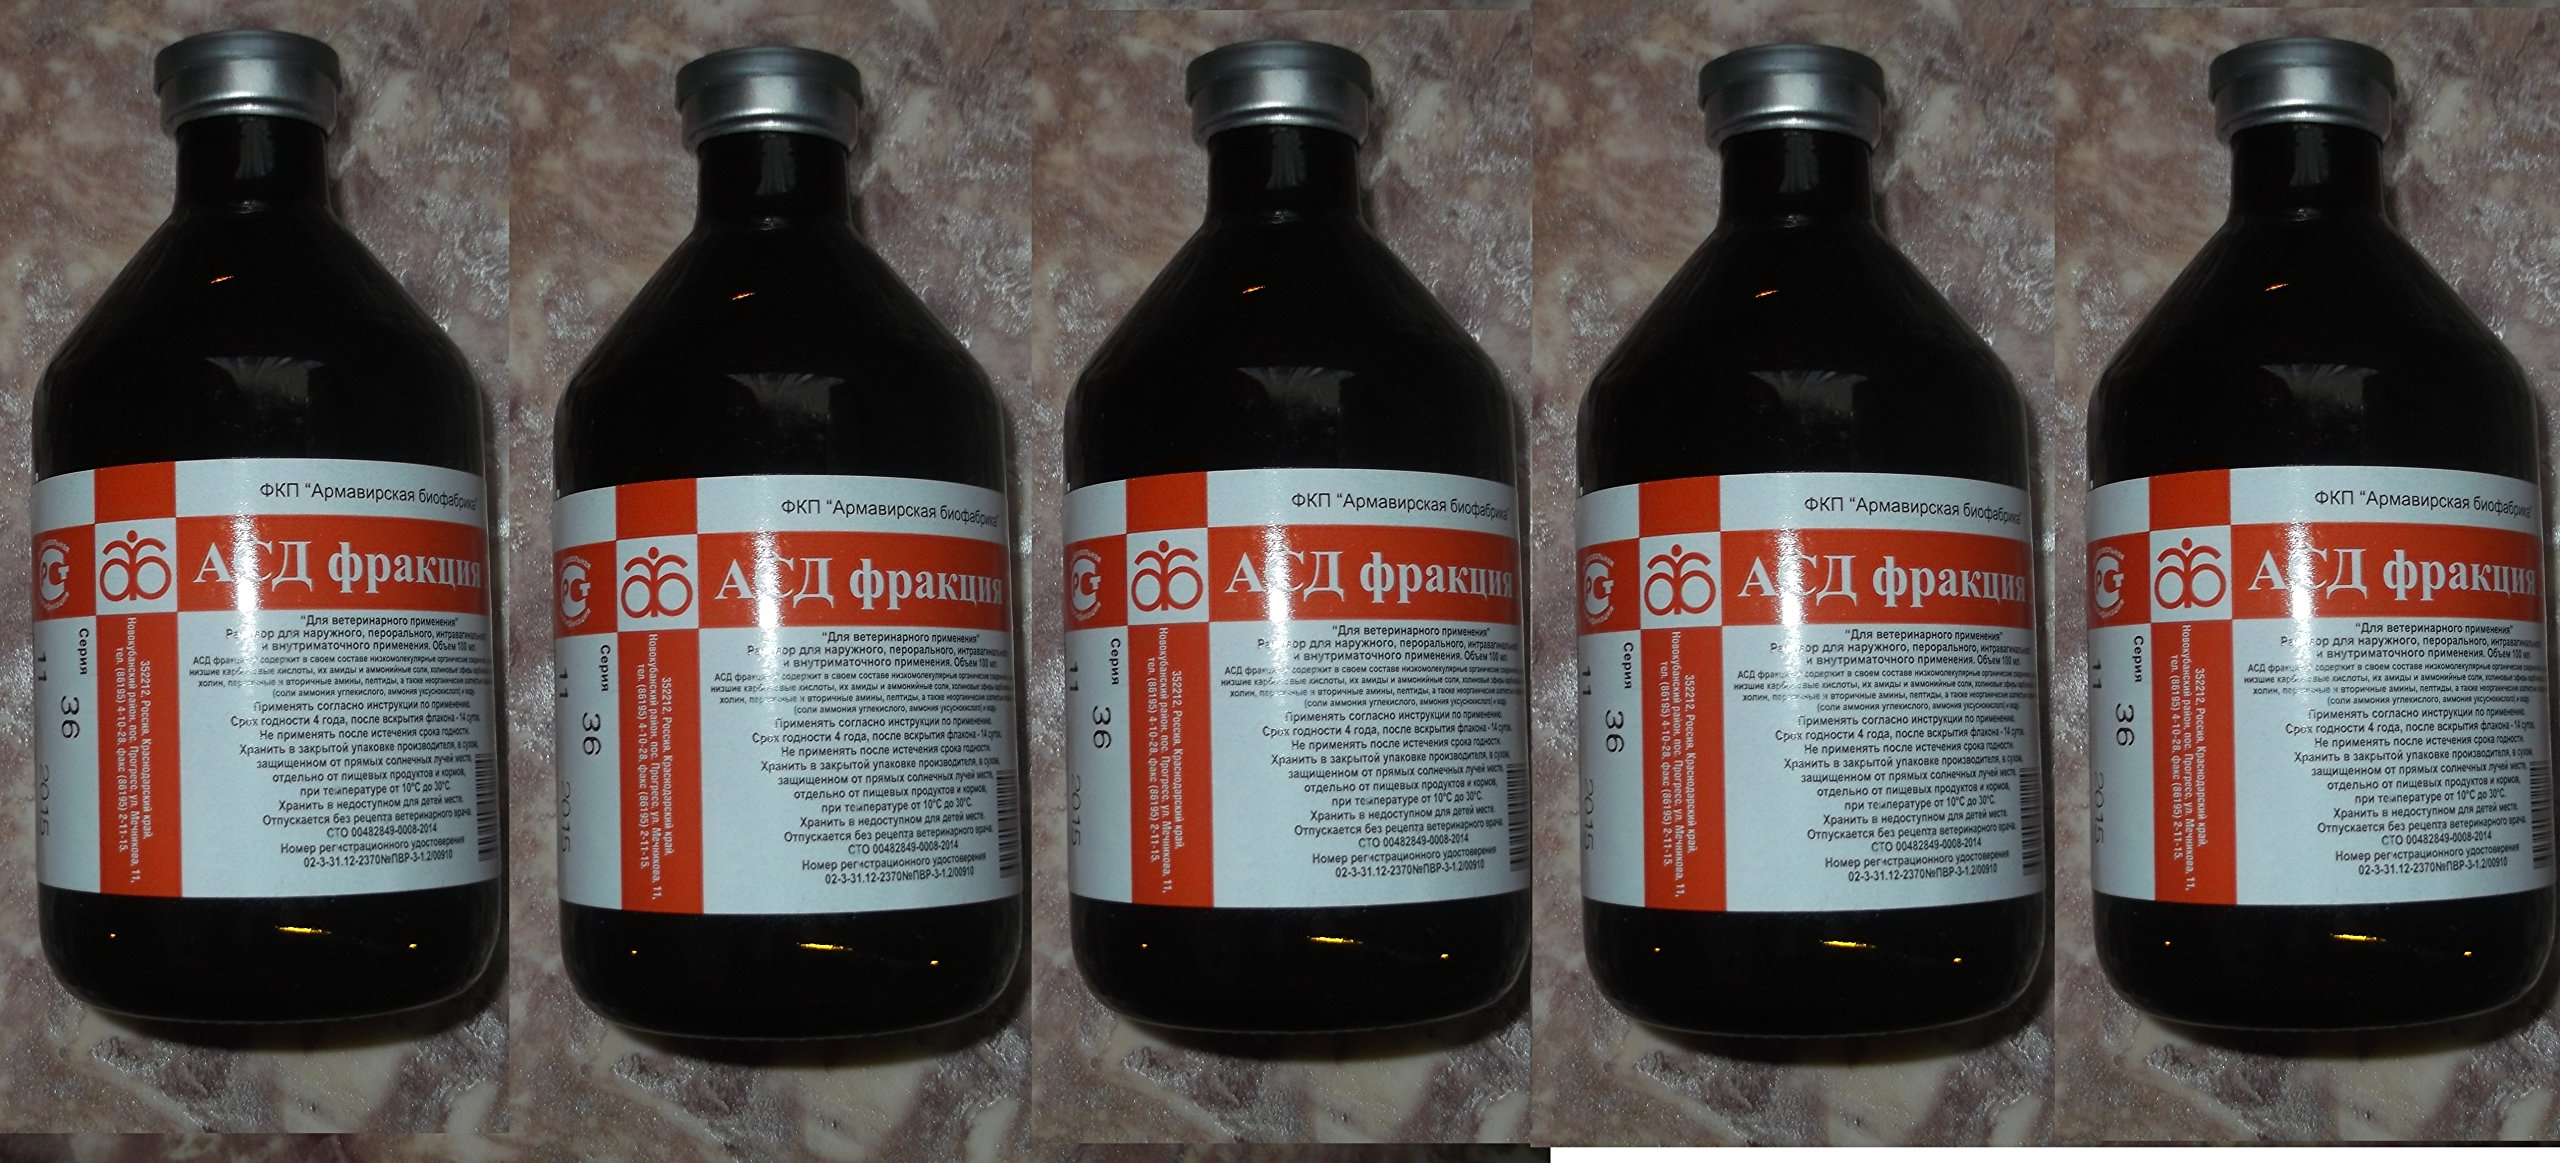 5 x ASD-2 (АСД) fraction for INTERNAL USE 100ml (A. Dorogov) (for treatment of PETS and ANIMALS: immunomodulator, oncology) by ASD-2 fraction